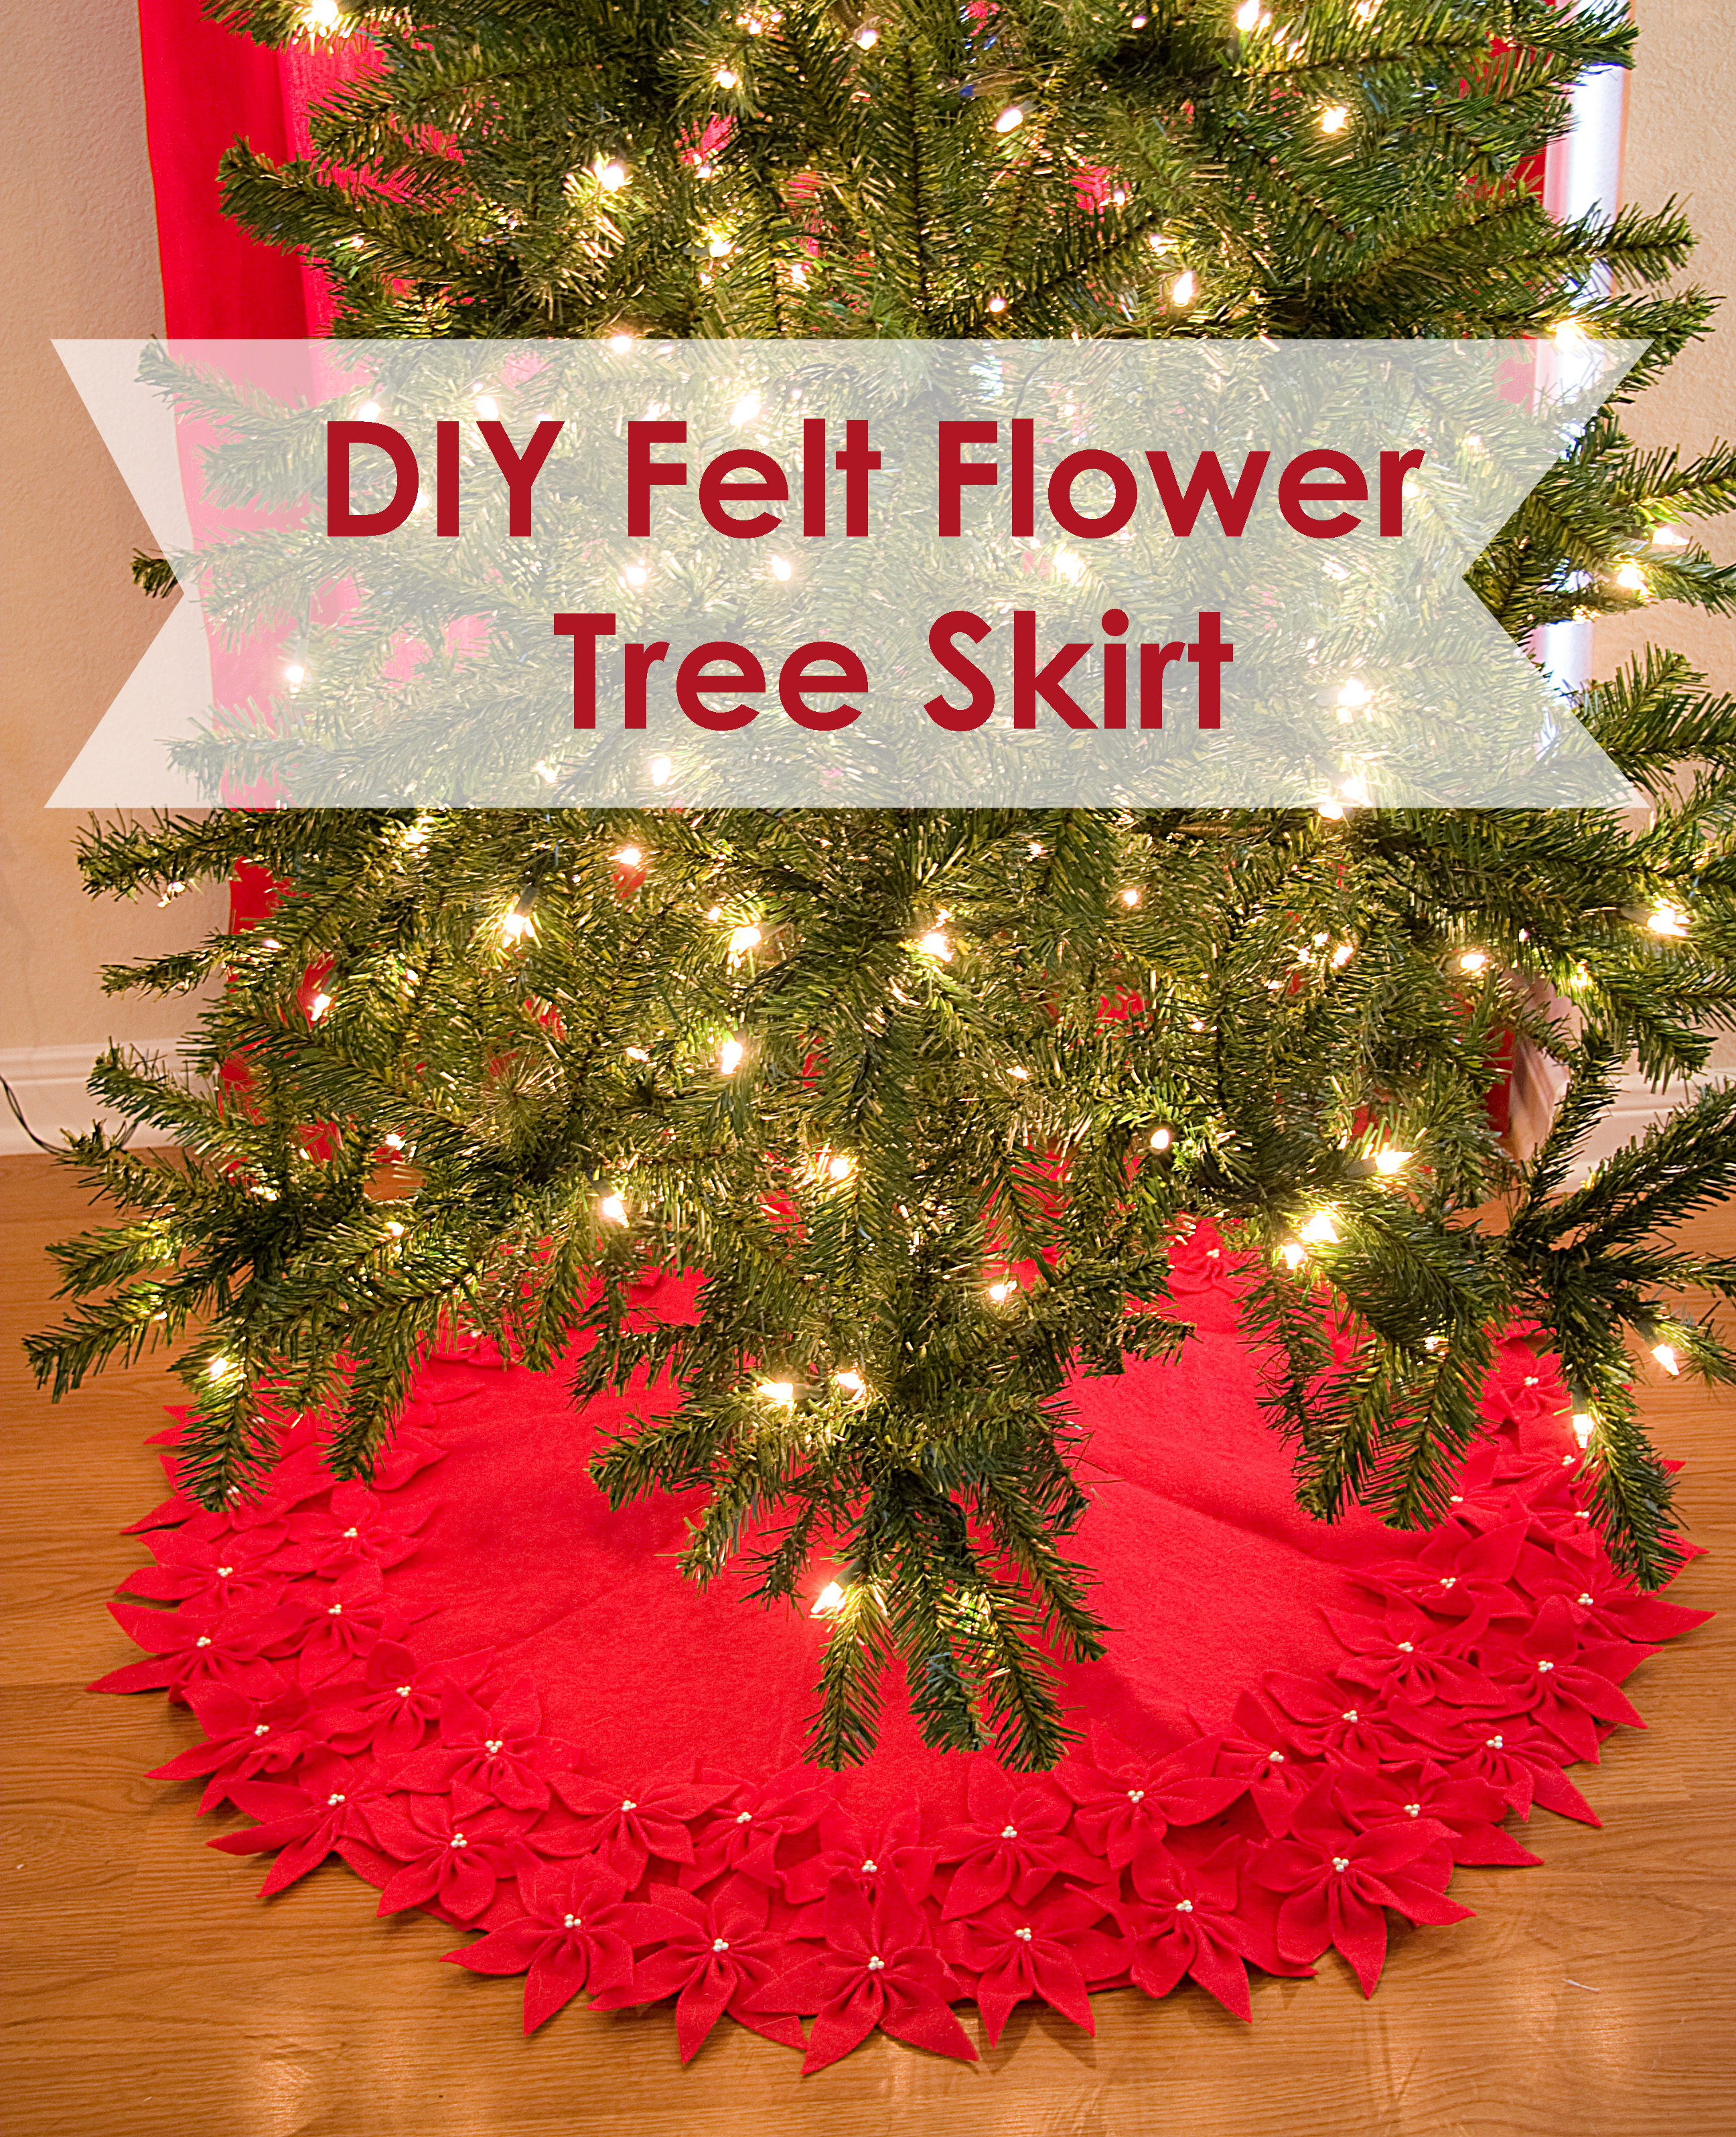 Felt FLower Tree Skirt - Stars and Sunshine - Sugar Bee Crafts